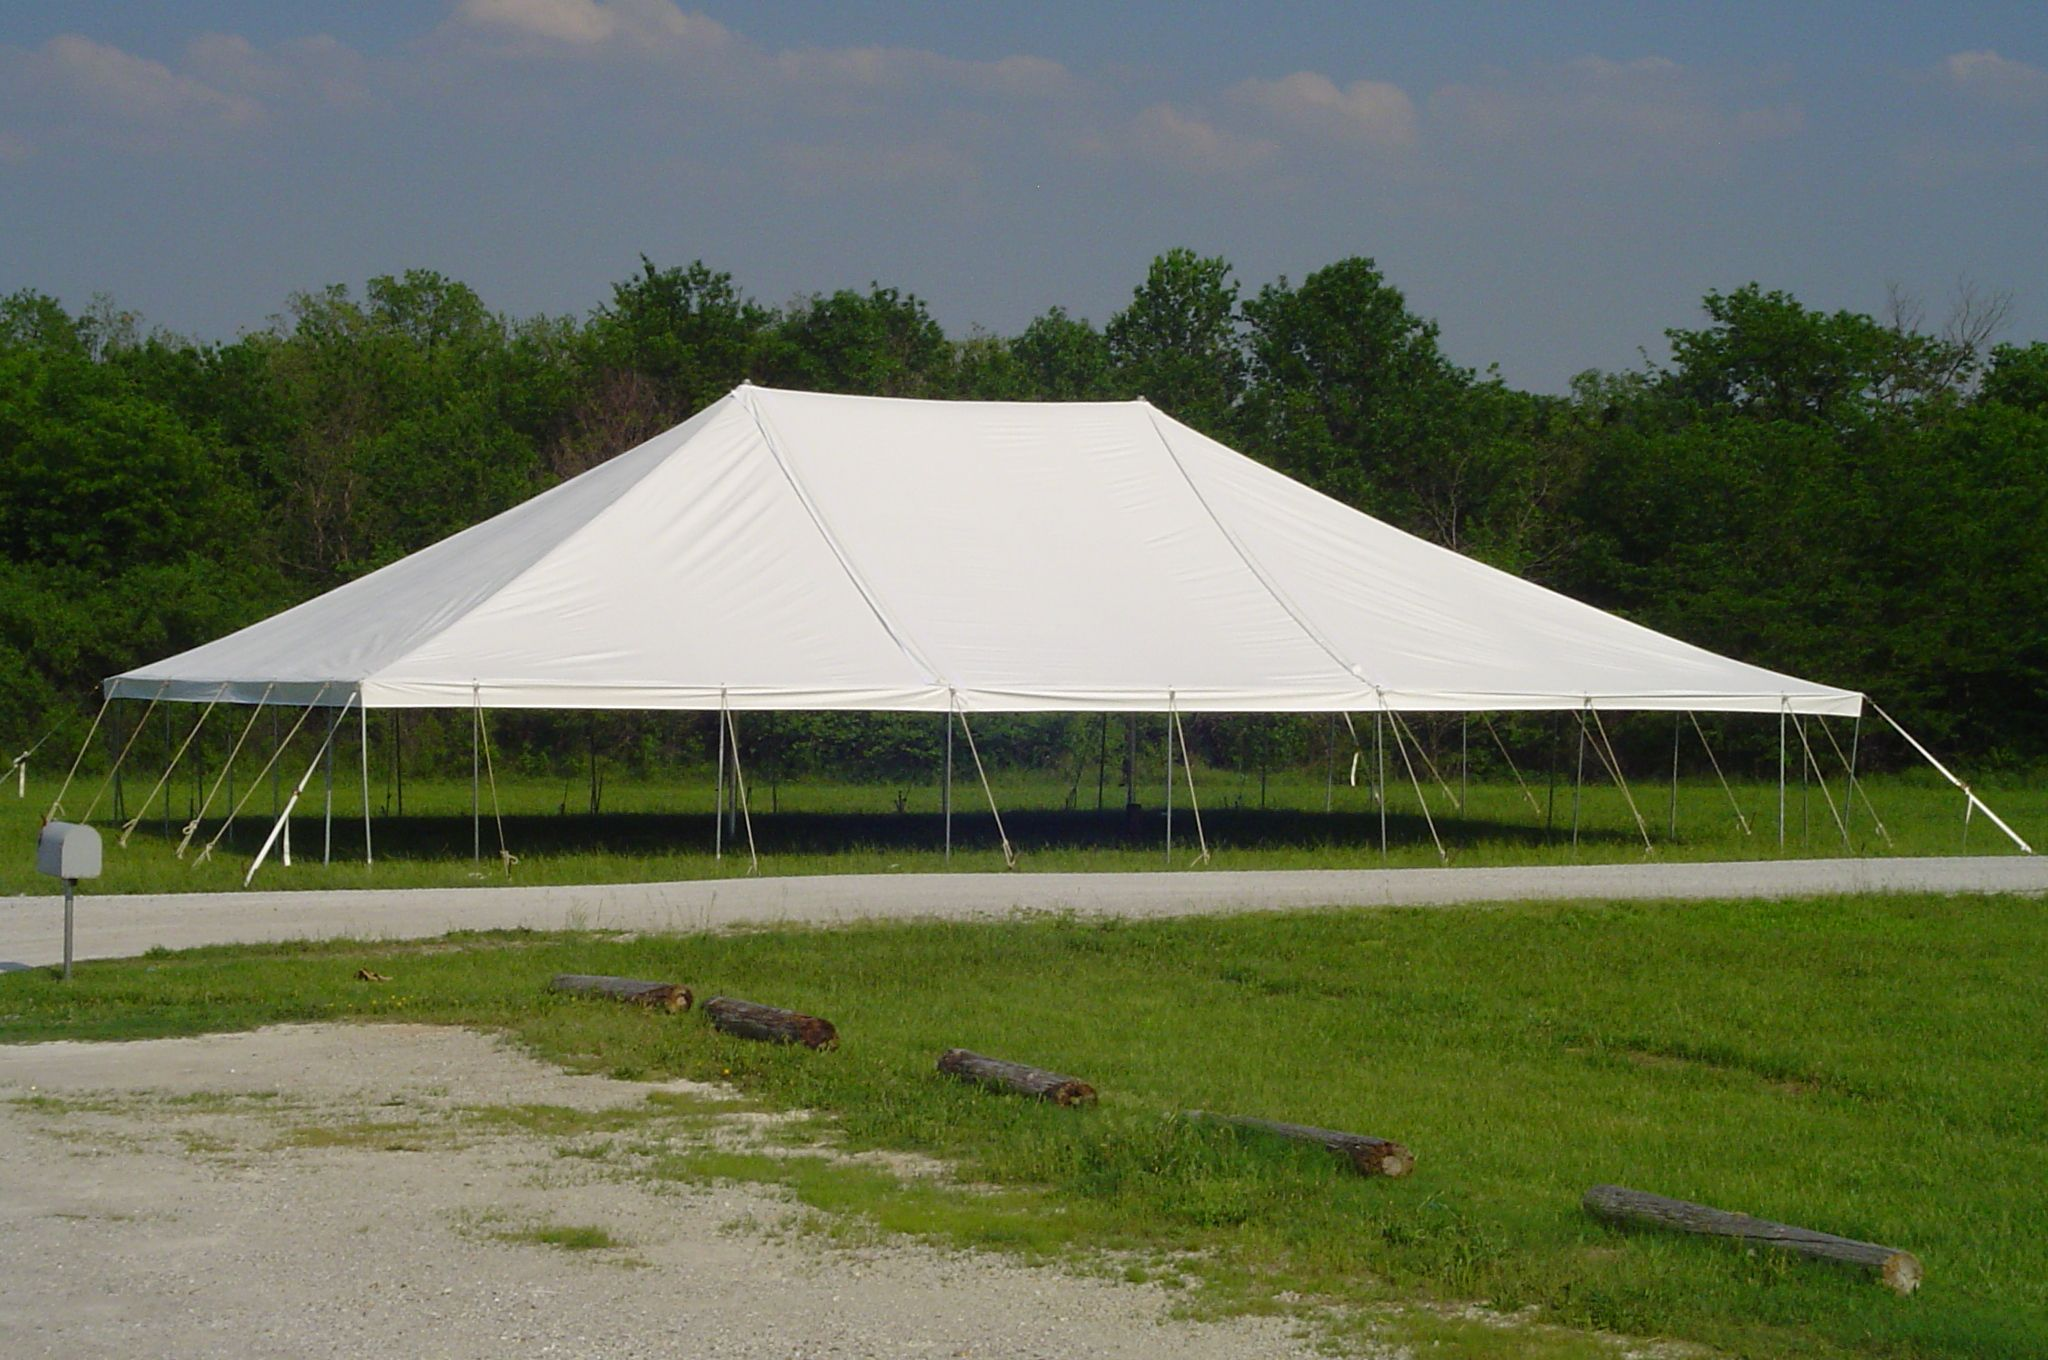 Miami Missionary Tent offers a variety of Pole Tents Event Tents u0026 Commercial Tents for all occasions. Visit your dedicated Tent Manufacturers today! & 50u0027 x 70u0027 party tent for sale. | Party tents for sale | Pinterest ...